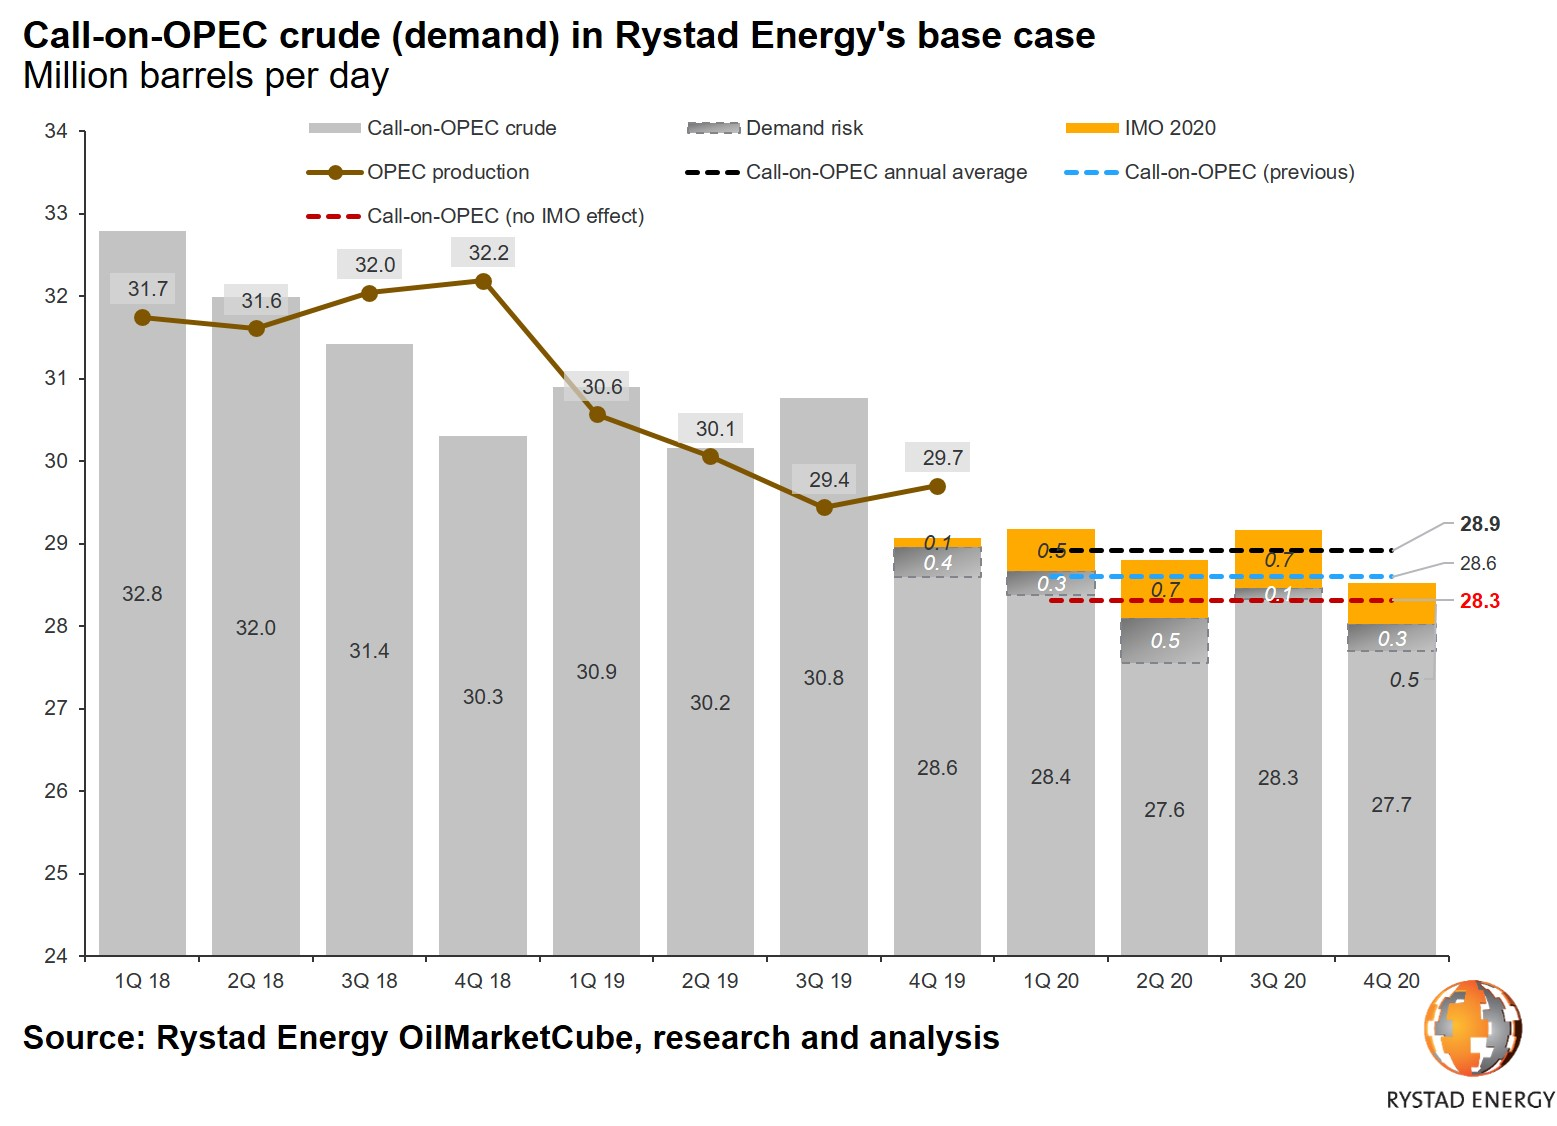 20191202_PR Chart Call on OPEC crude 2020 RE base case.jpg